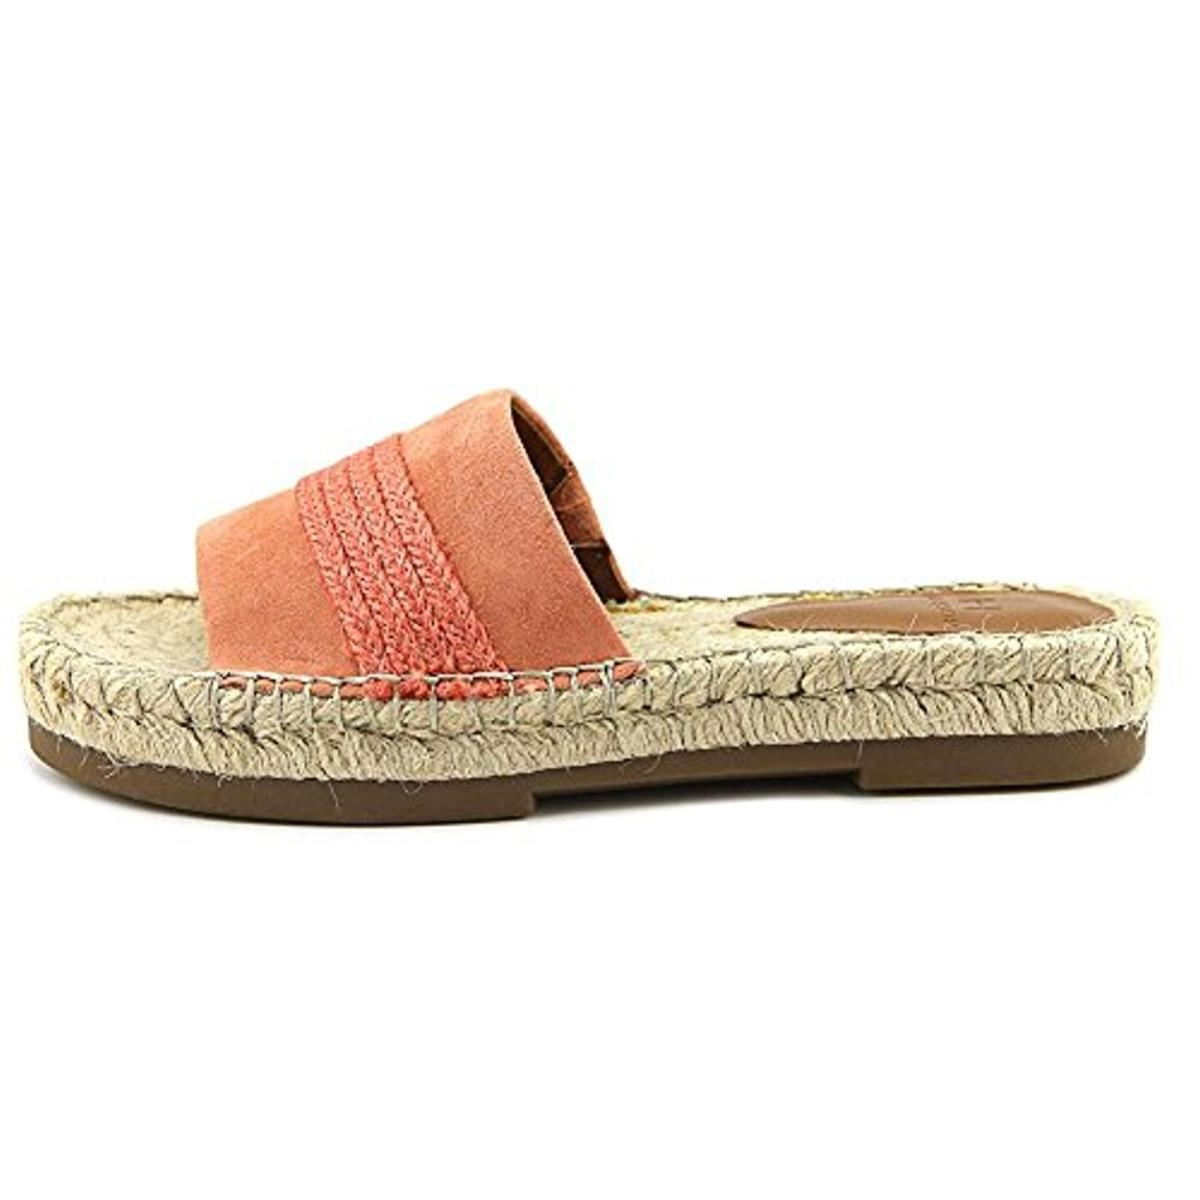 H-Halston-Womens-Betty-Suede-Braided-Casual-Flat-Sandals-Shoes-BHFO-0701 thumbnail 15